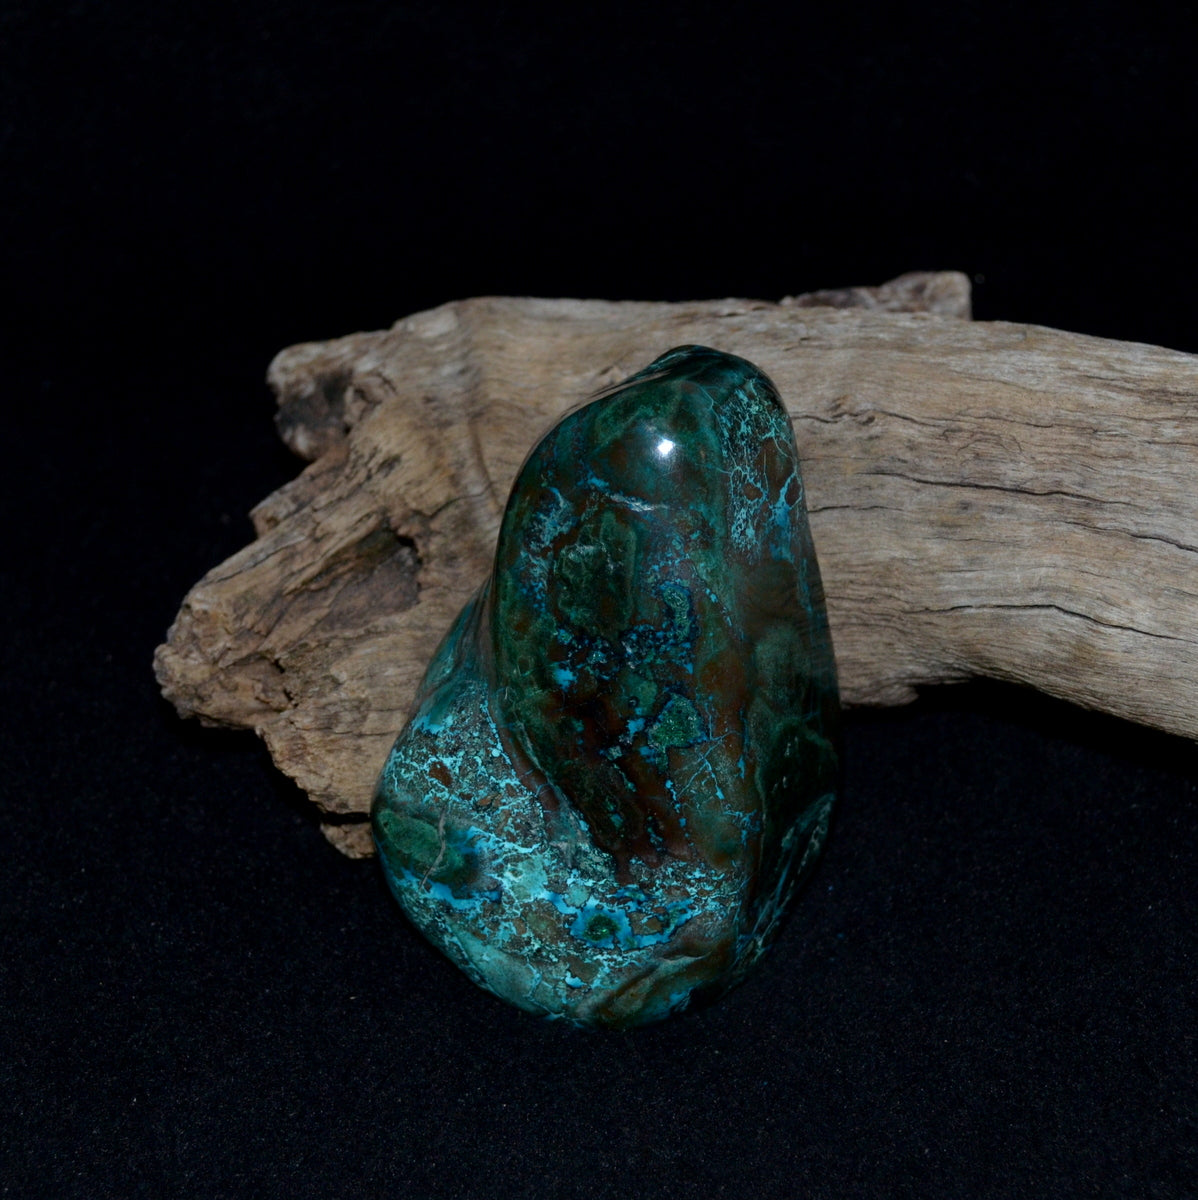 Chrysocolla Malachite Polished Freeform - Protective Truth Emotional Healing - Shop Now at Illiom Crystals - Afterpay Available